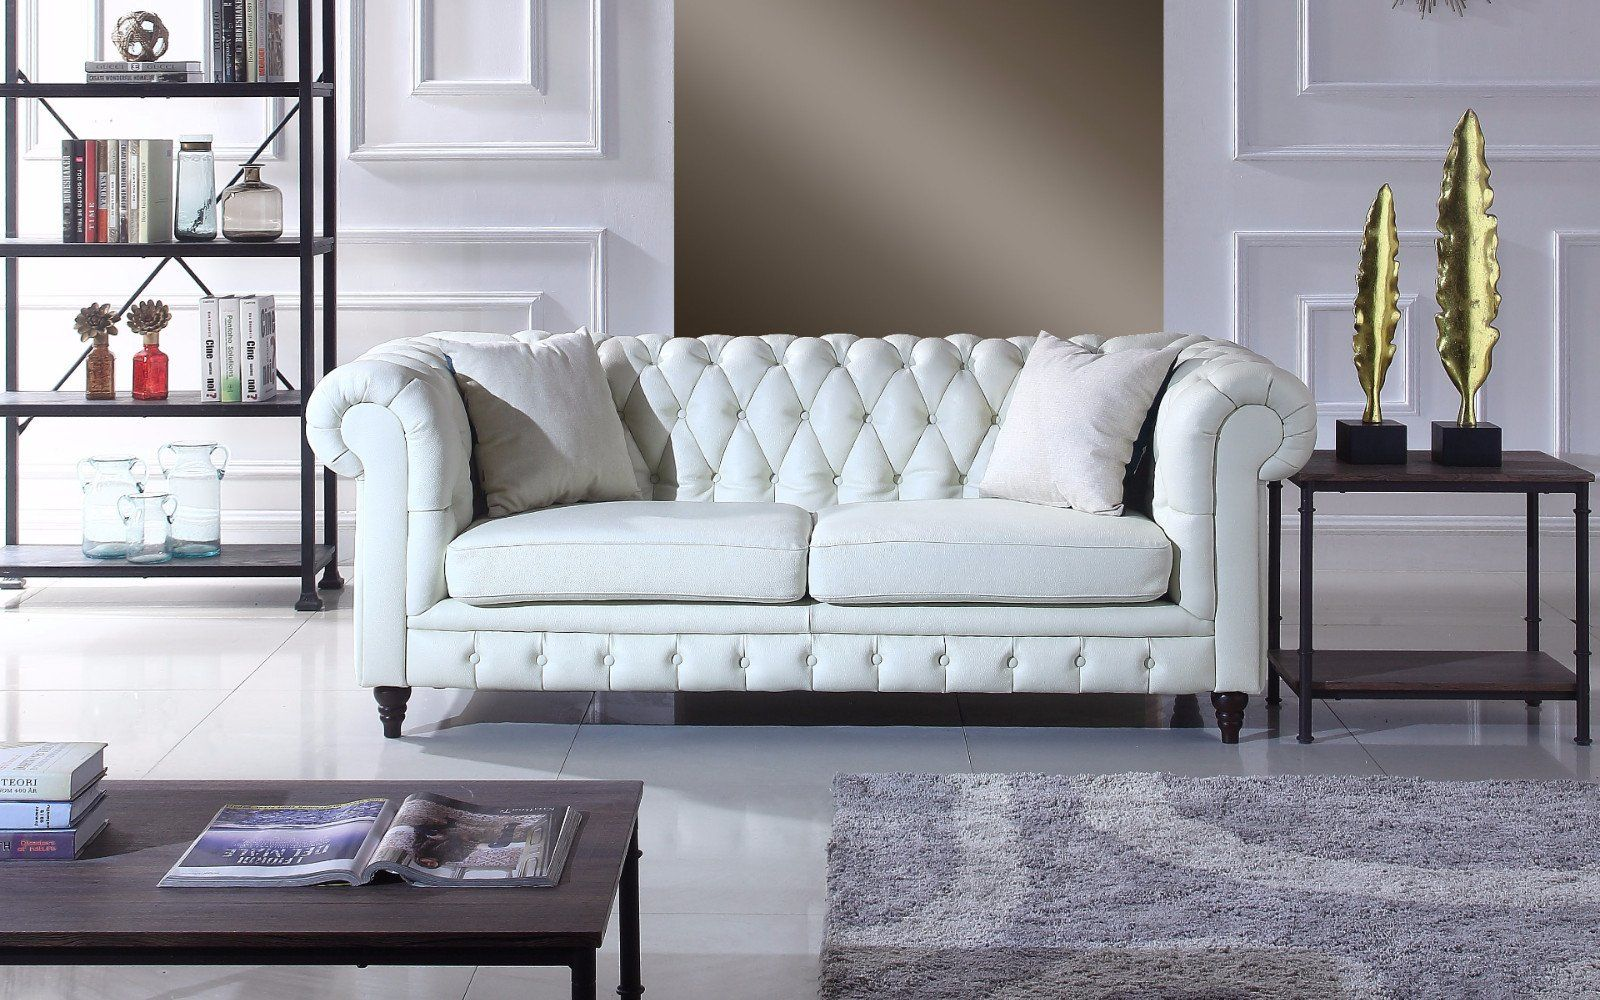 crawley leather chesterfield sofa | leather chesterfield